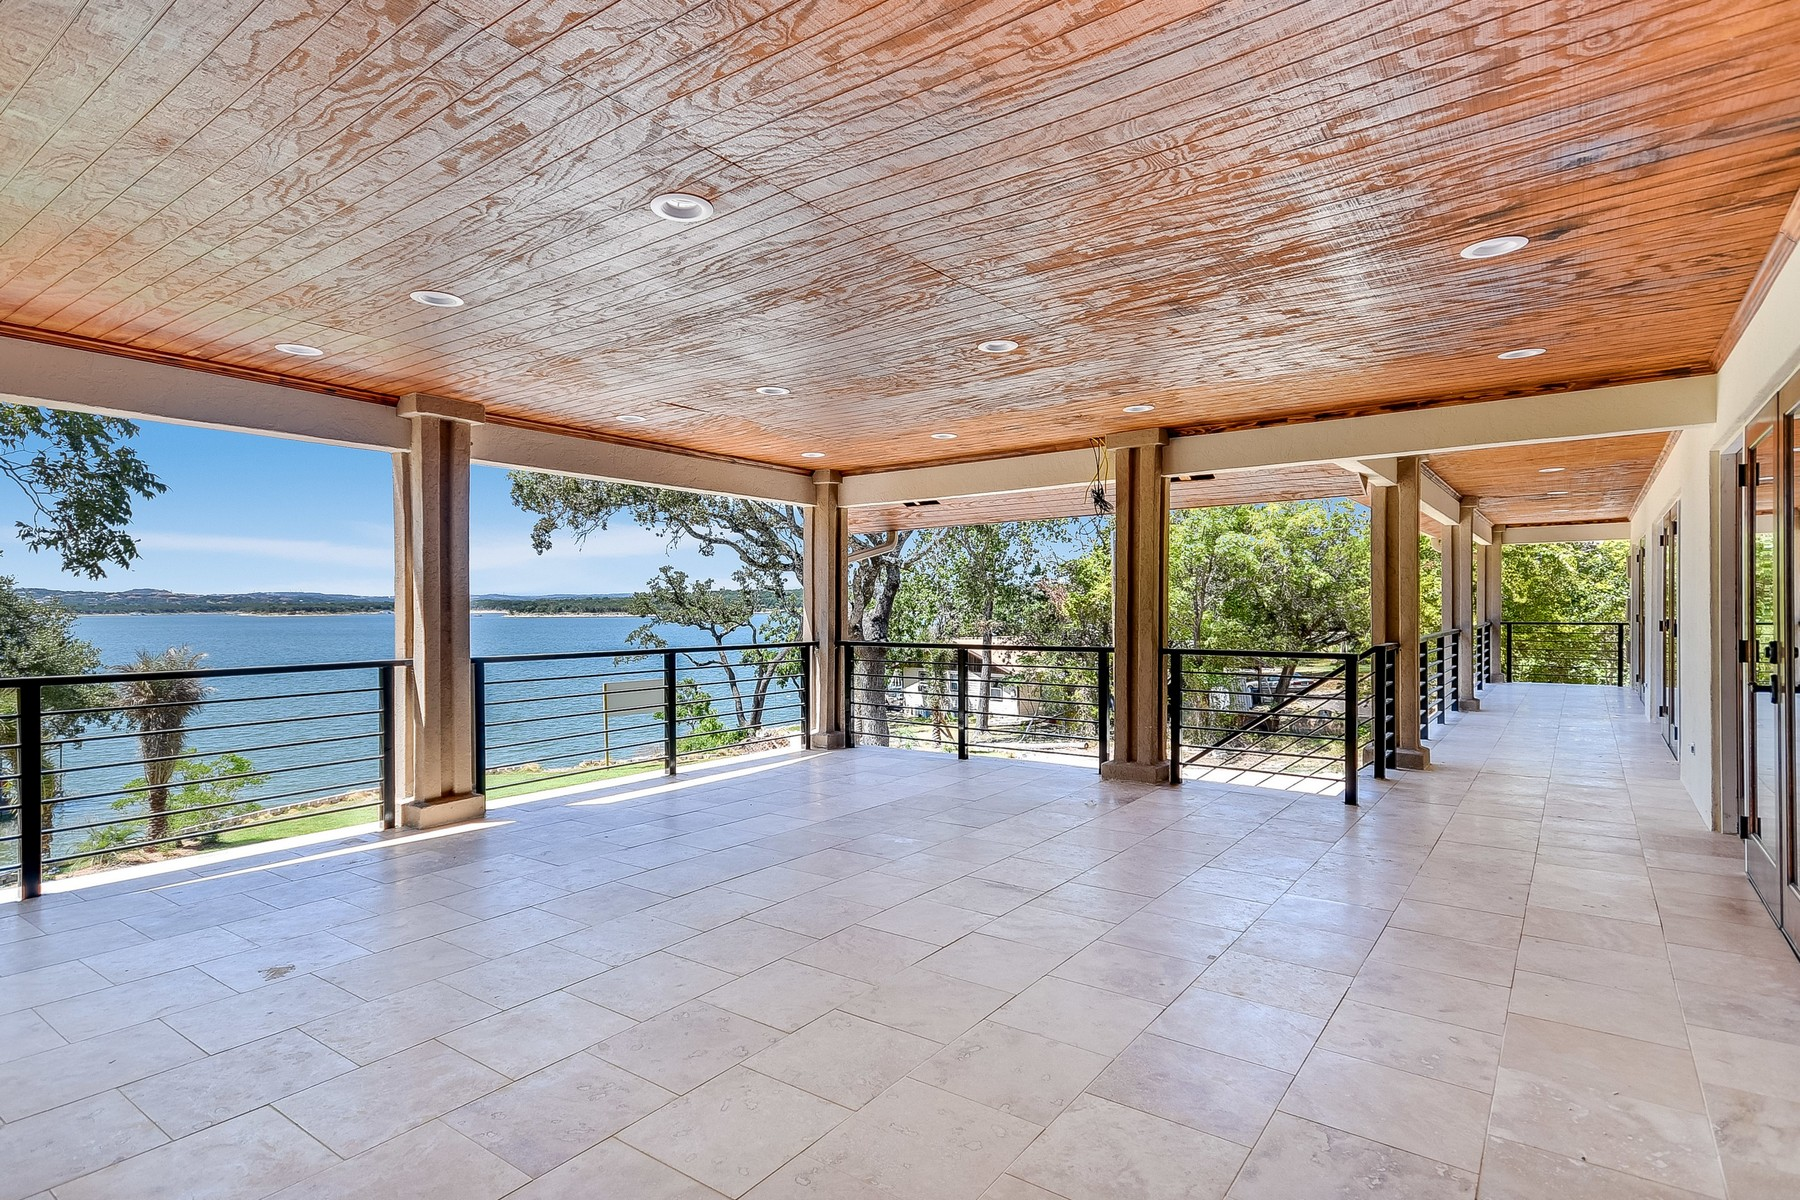 Moradia para Venda às Stunning Home with a Fabulous Lake View 16907 S Ridge Ln Austin, Texas, 78734 Estados Unidos